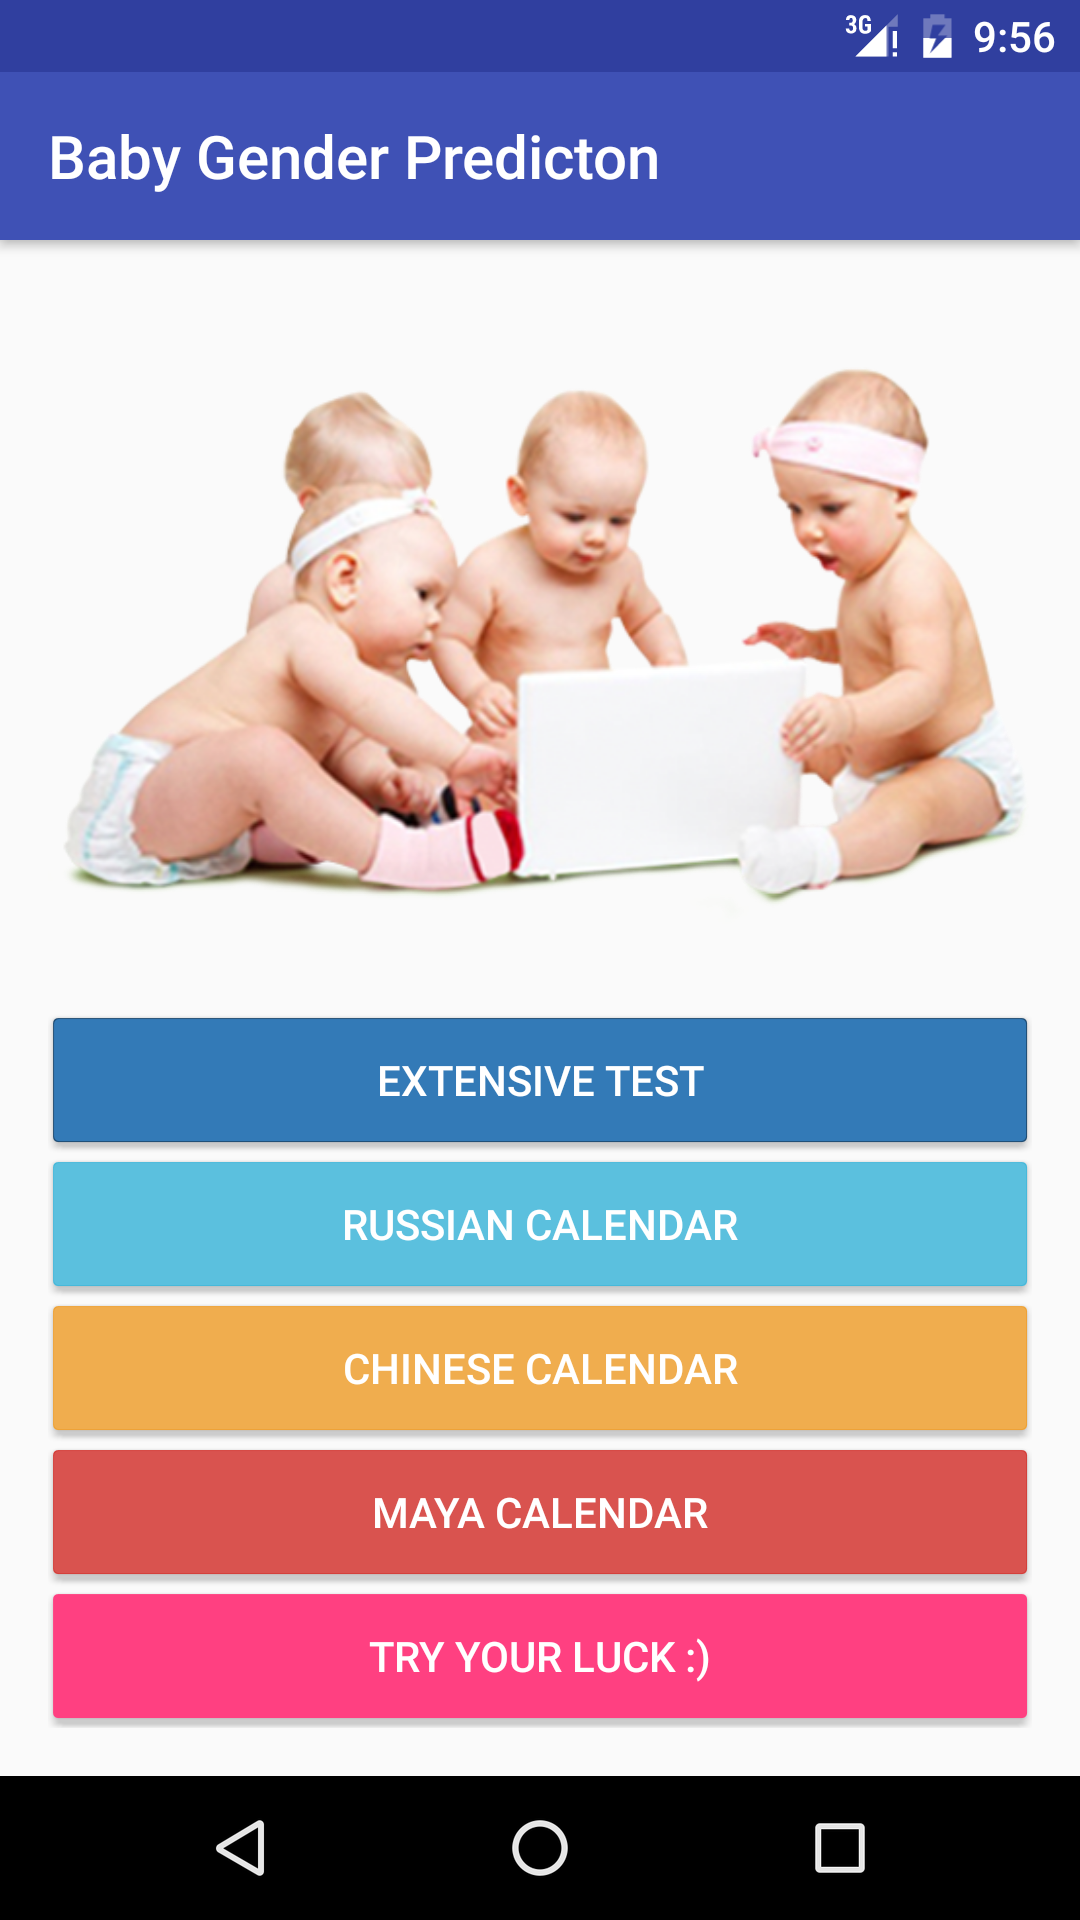 Baby Gender Predictor: Amazon.co.uk: Appstore for Android